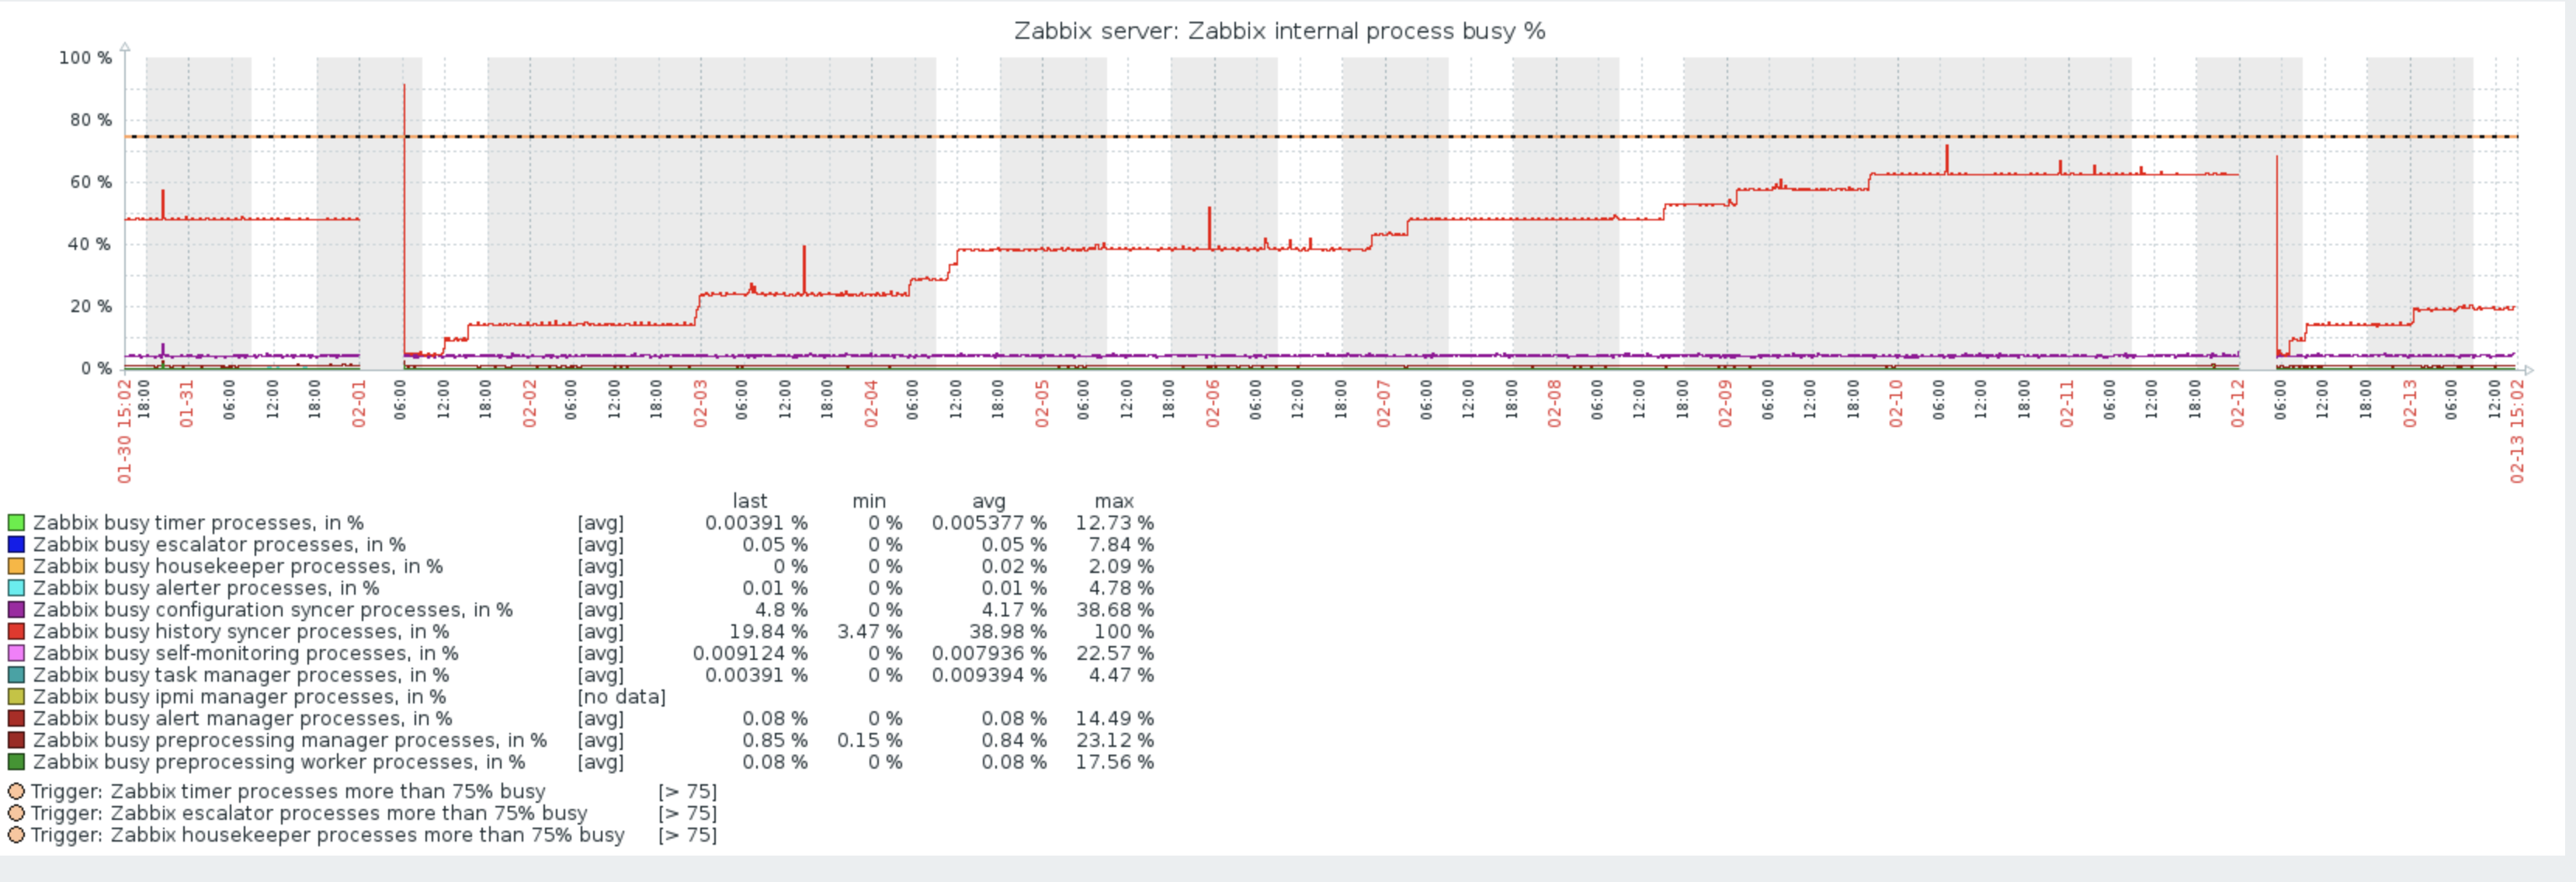 ZBX-15008] Zabbix server stops processing data - ZABBIX SUPPORT